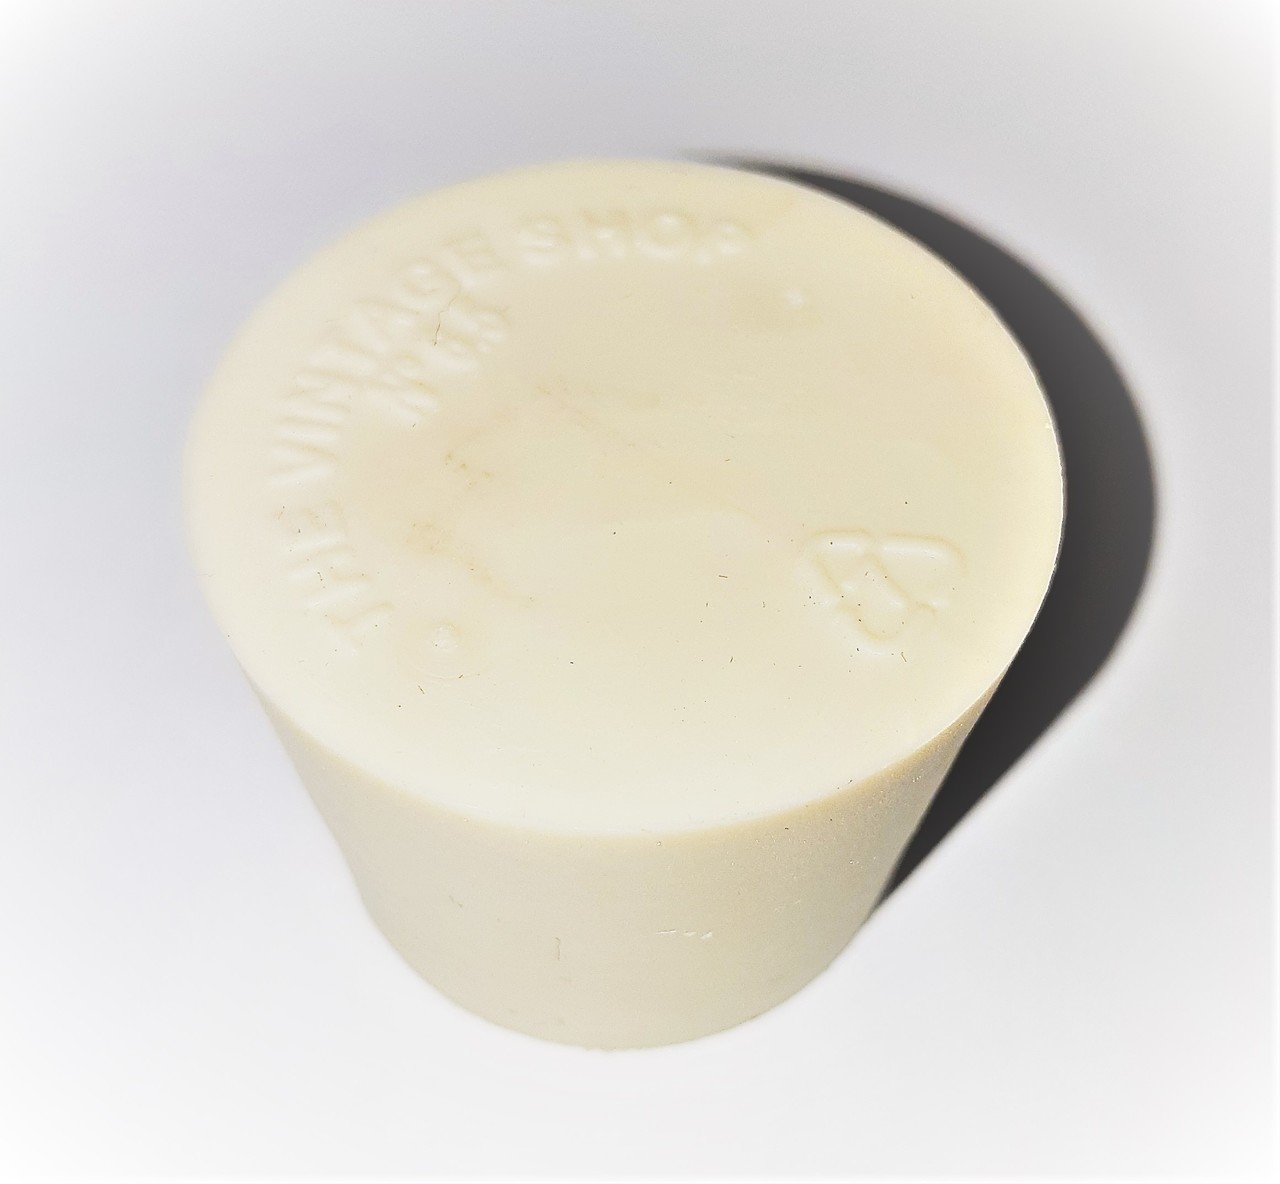 8339 No. 10 Solid Stopper